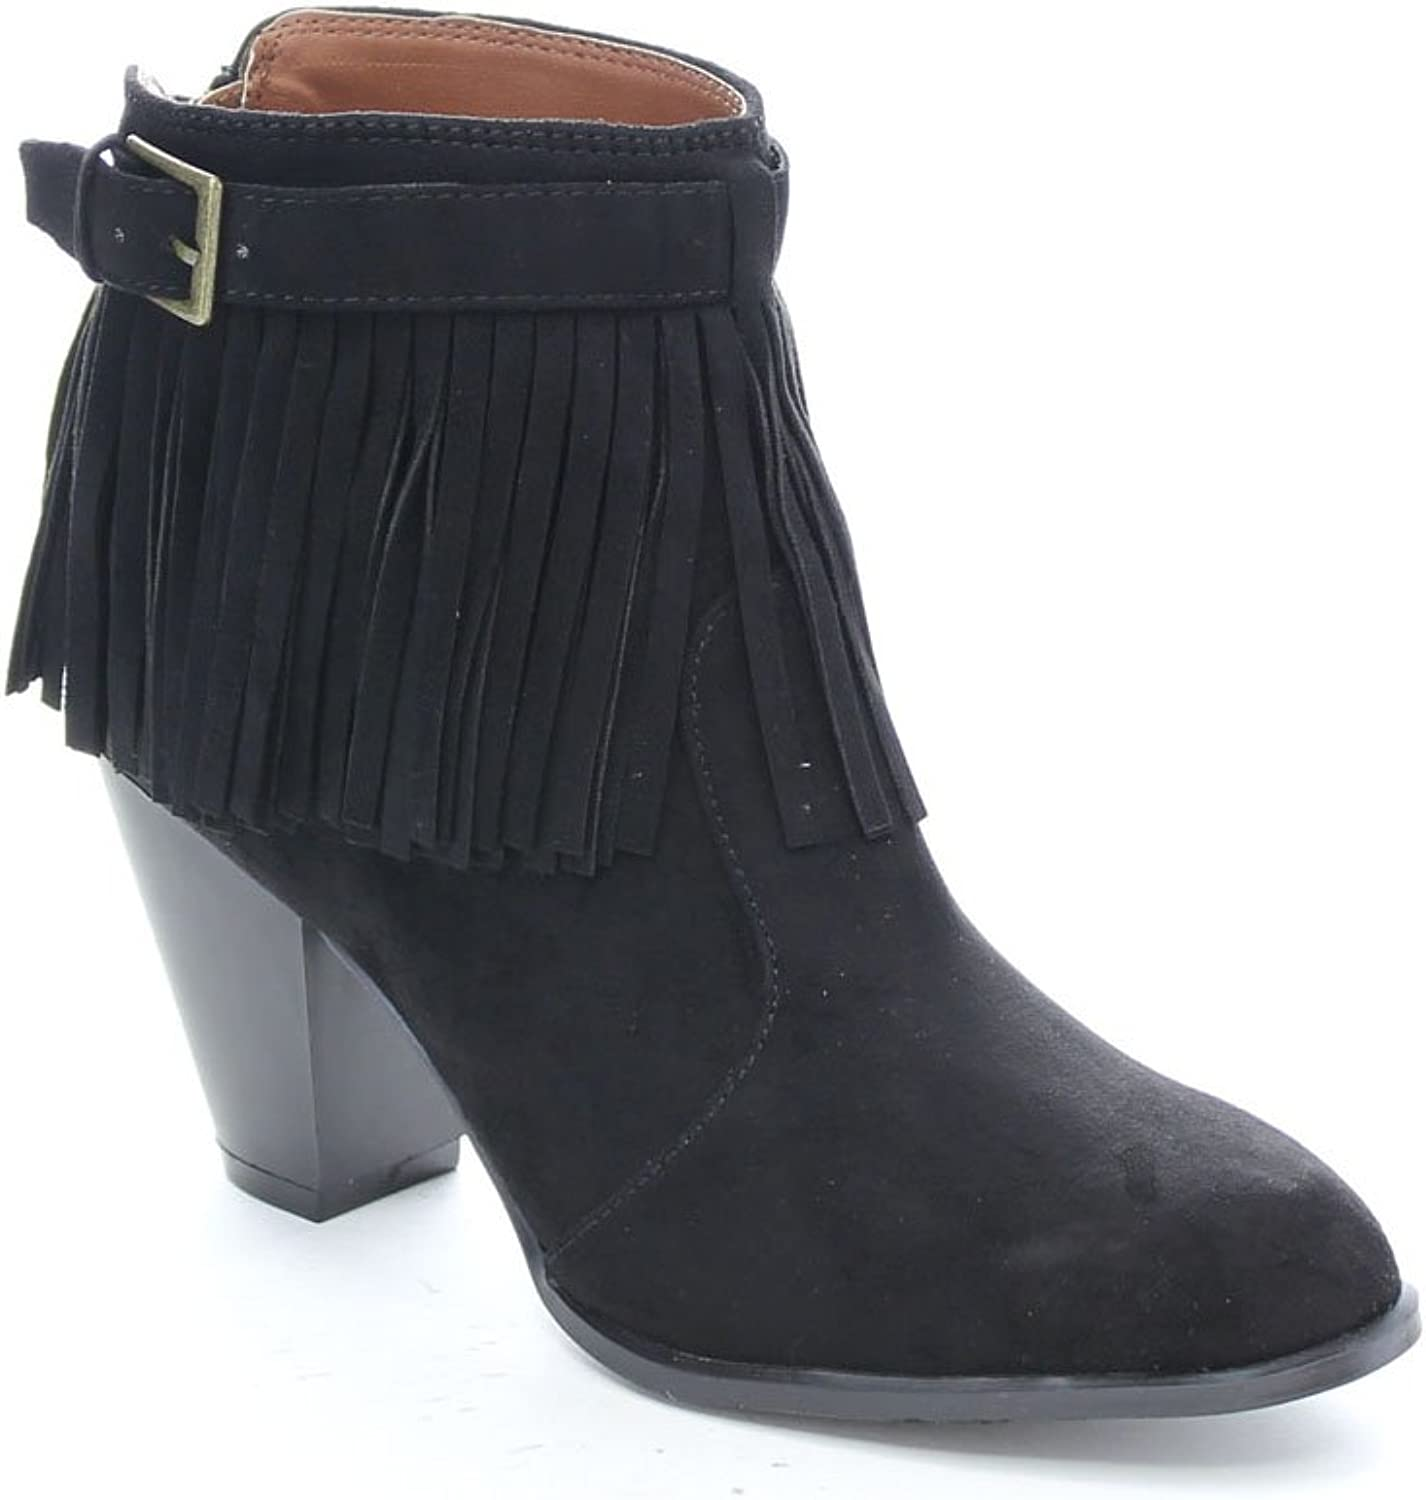 Qupid Salty-21X Women's Fringe Pointy Toe Stacked Chunky Heel Ankle Booties,Black,8.5